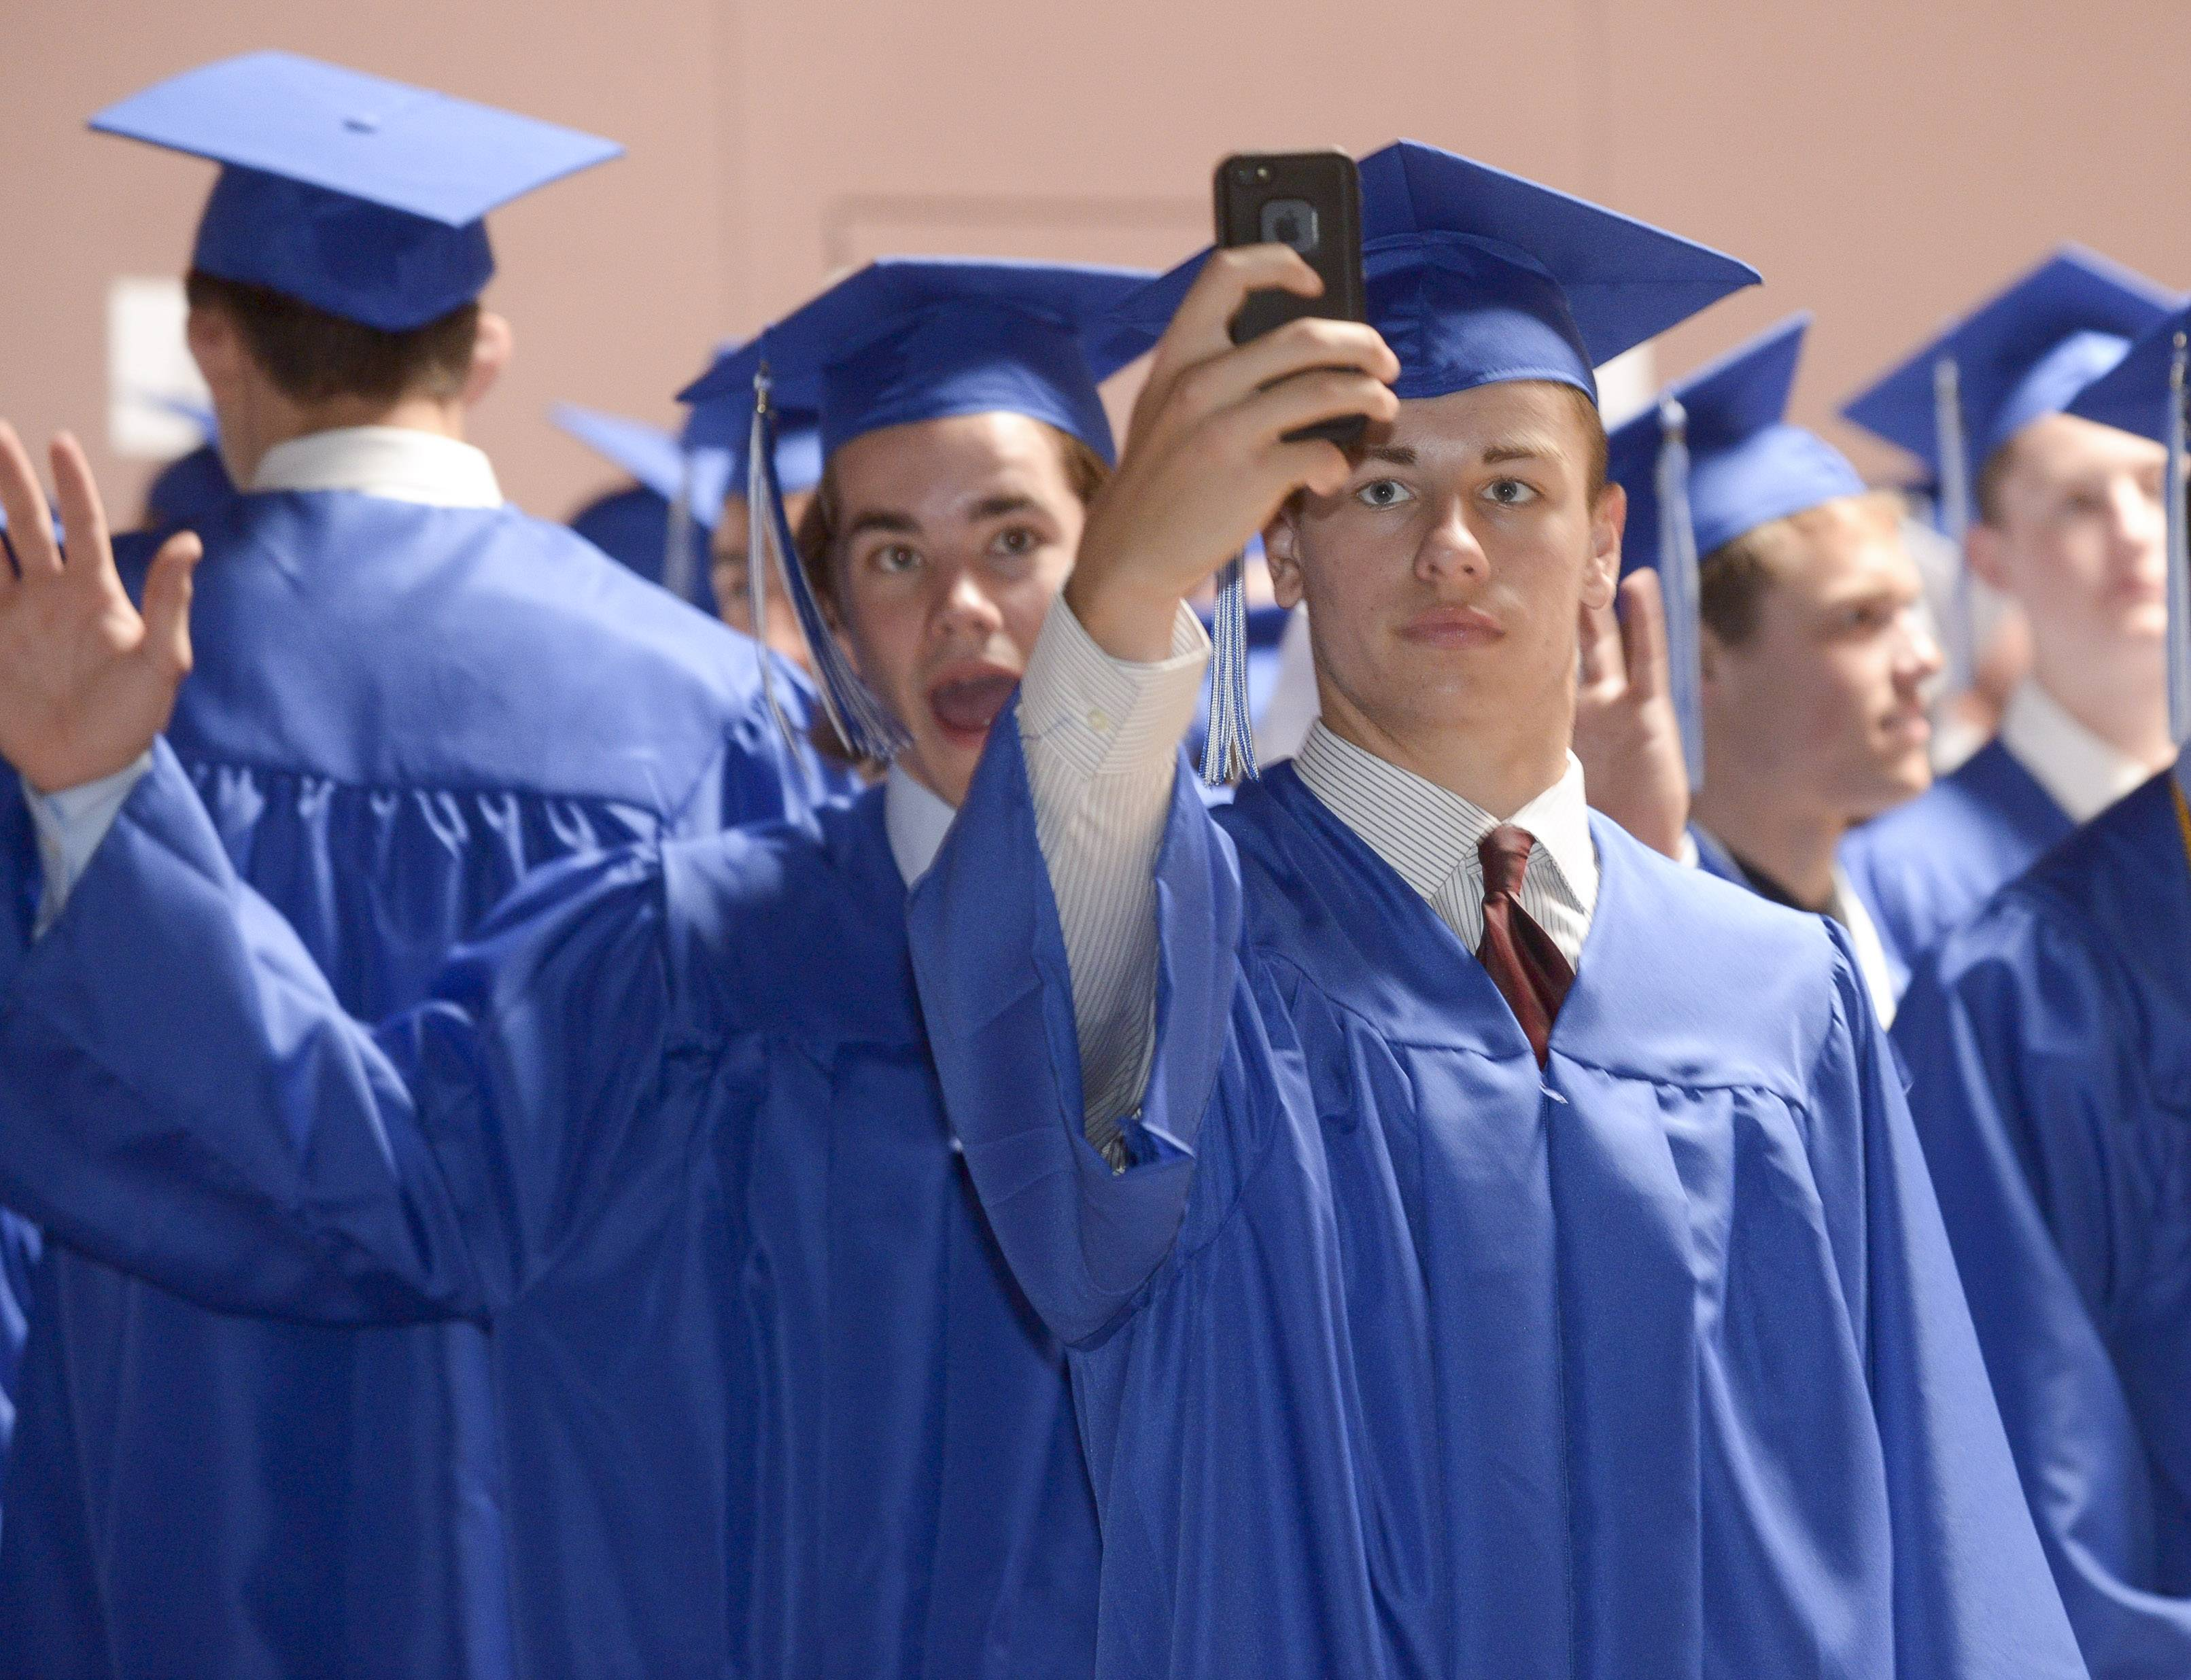 Matt Kelly of Wheaton takes a selfie before the start of the St. Francis High School graduation Sunday, May 18 at St. John Neumann Church in St. Charles